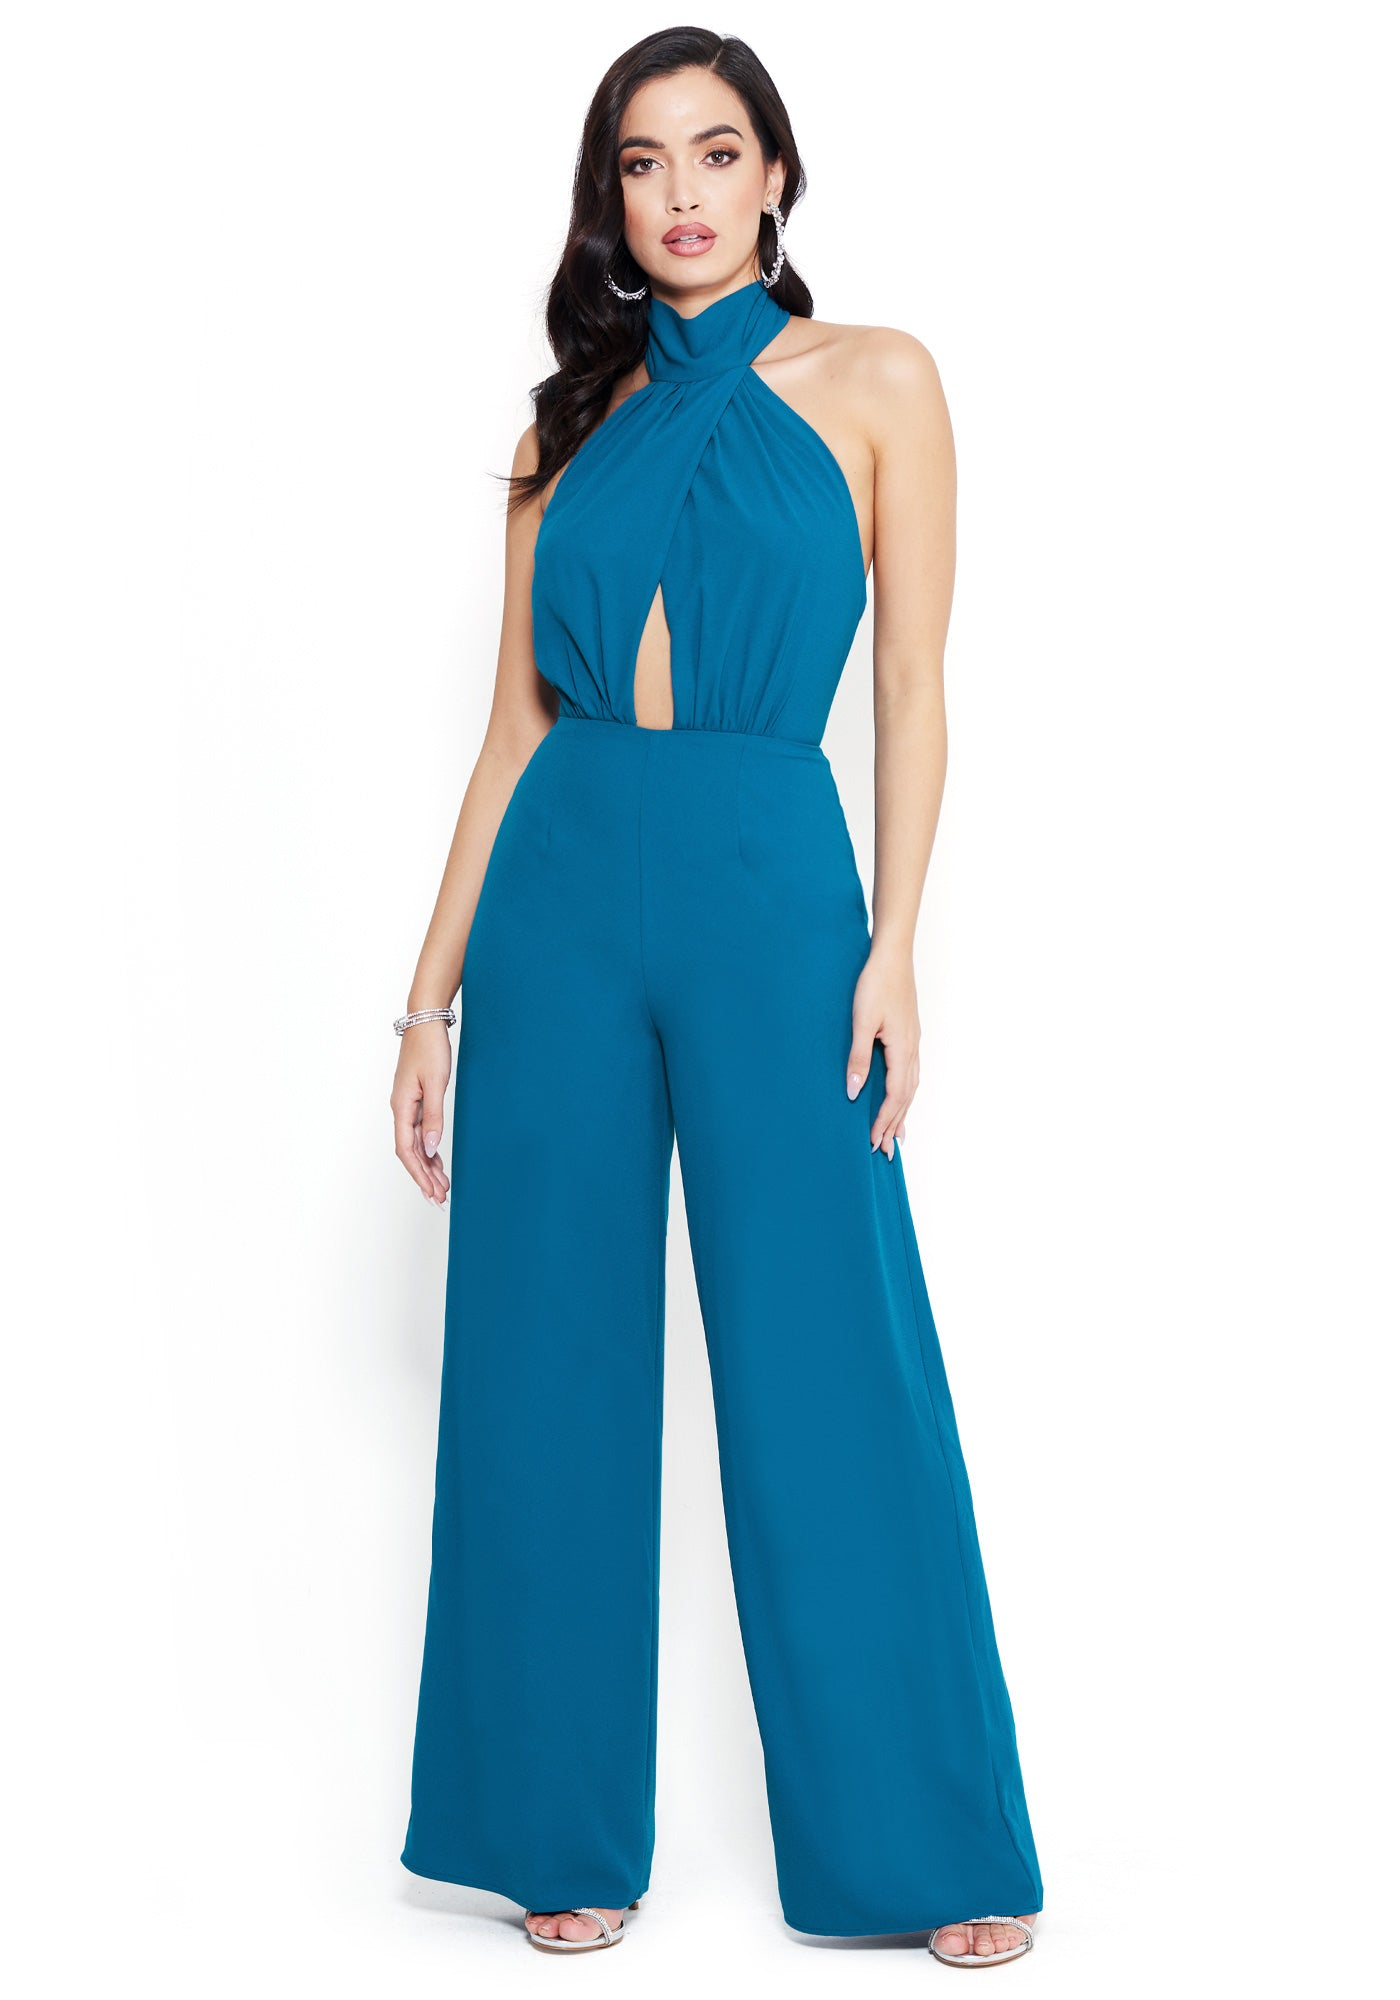 Bebe Women's Keyhole Halter Jumpsuit, Size 00 in MOROCCAN BLUE Polyester